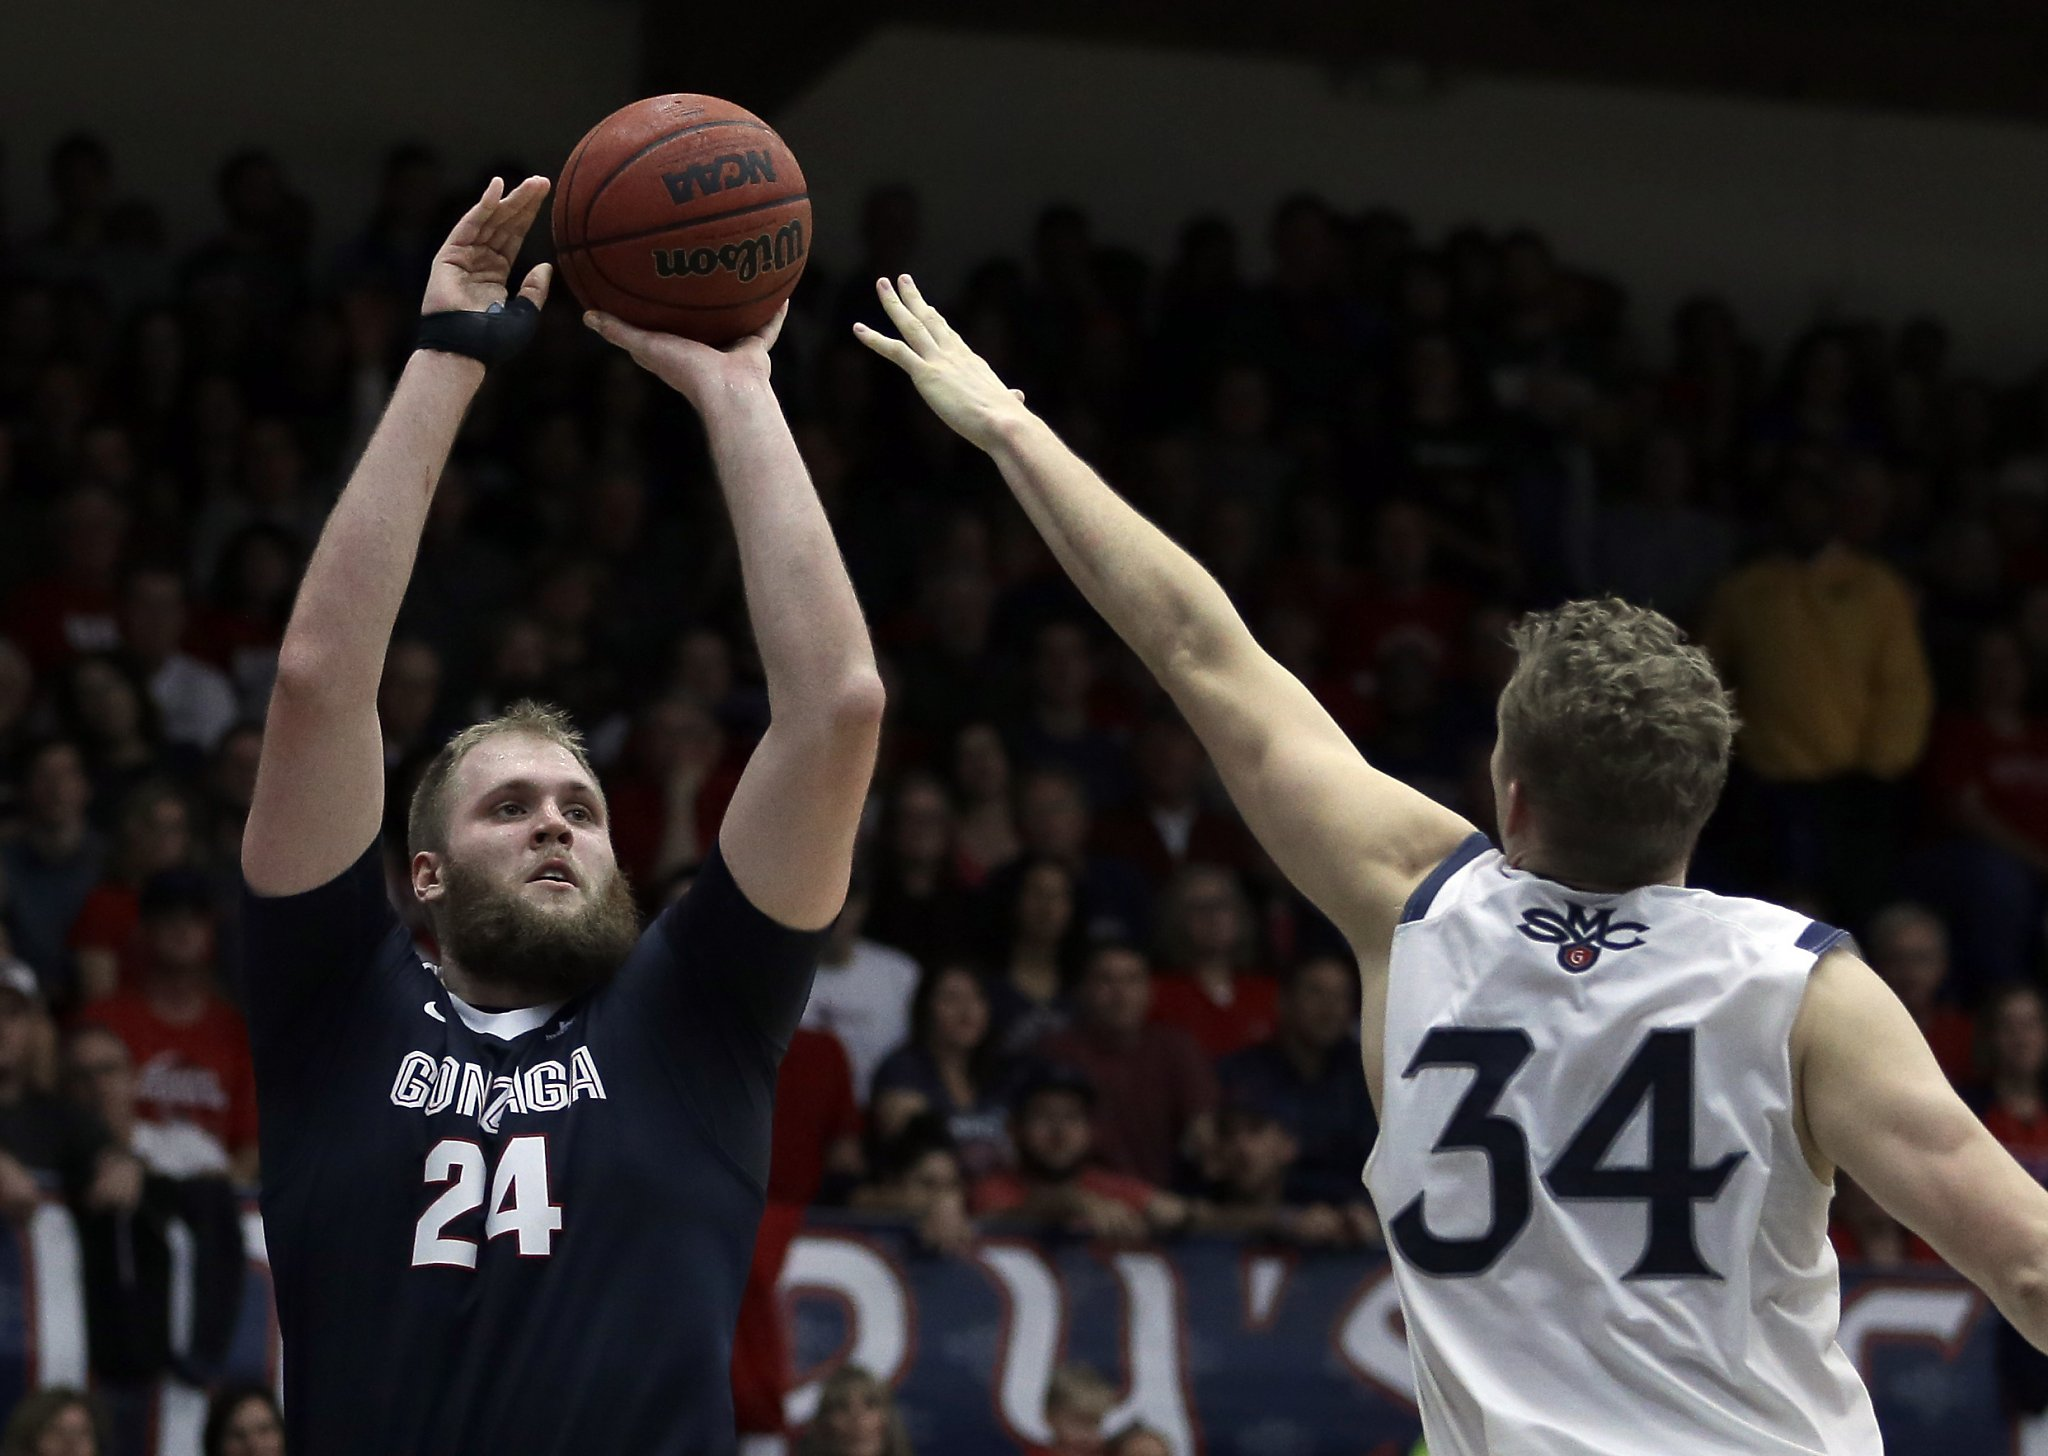 St. Mary's spotlight dimmed by loss to Gonzaga